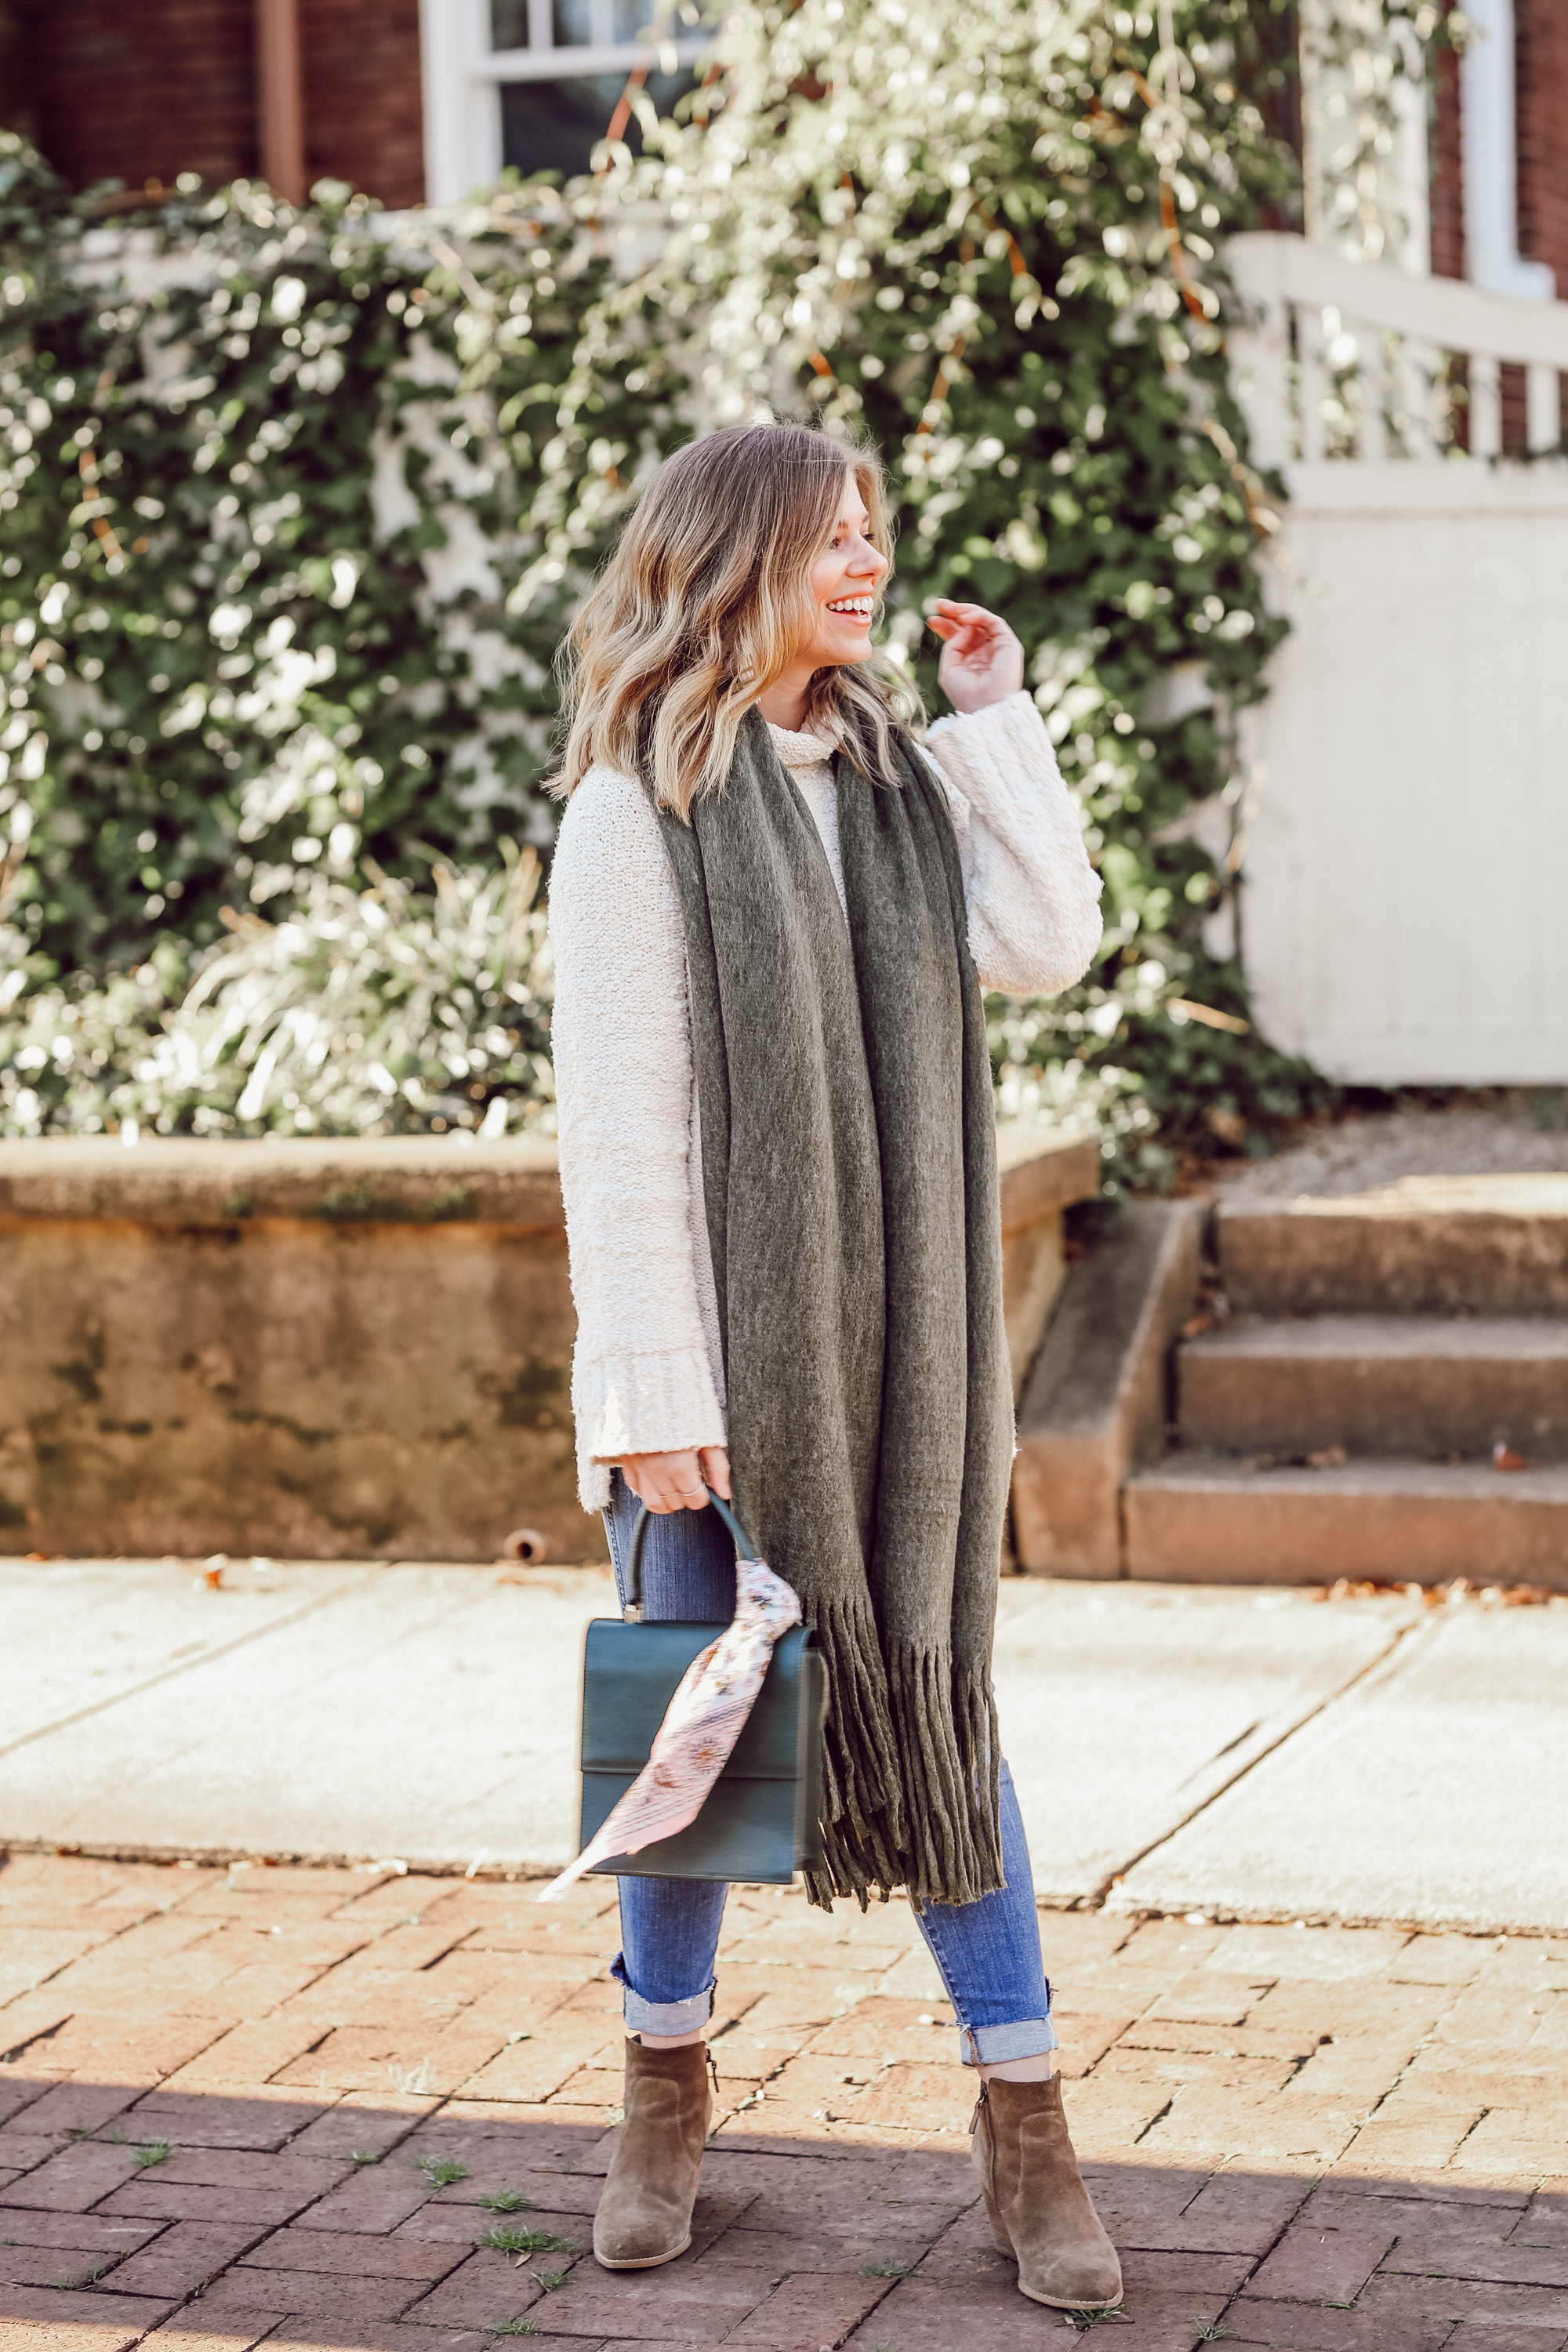 Winter Brewery Hopping Outfit Idea | Casual Everyday Style | Louella Reese